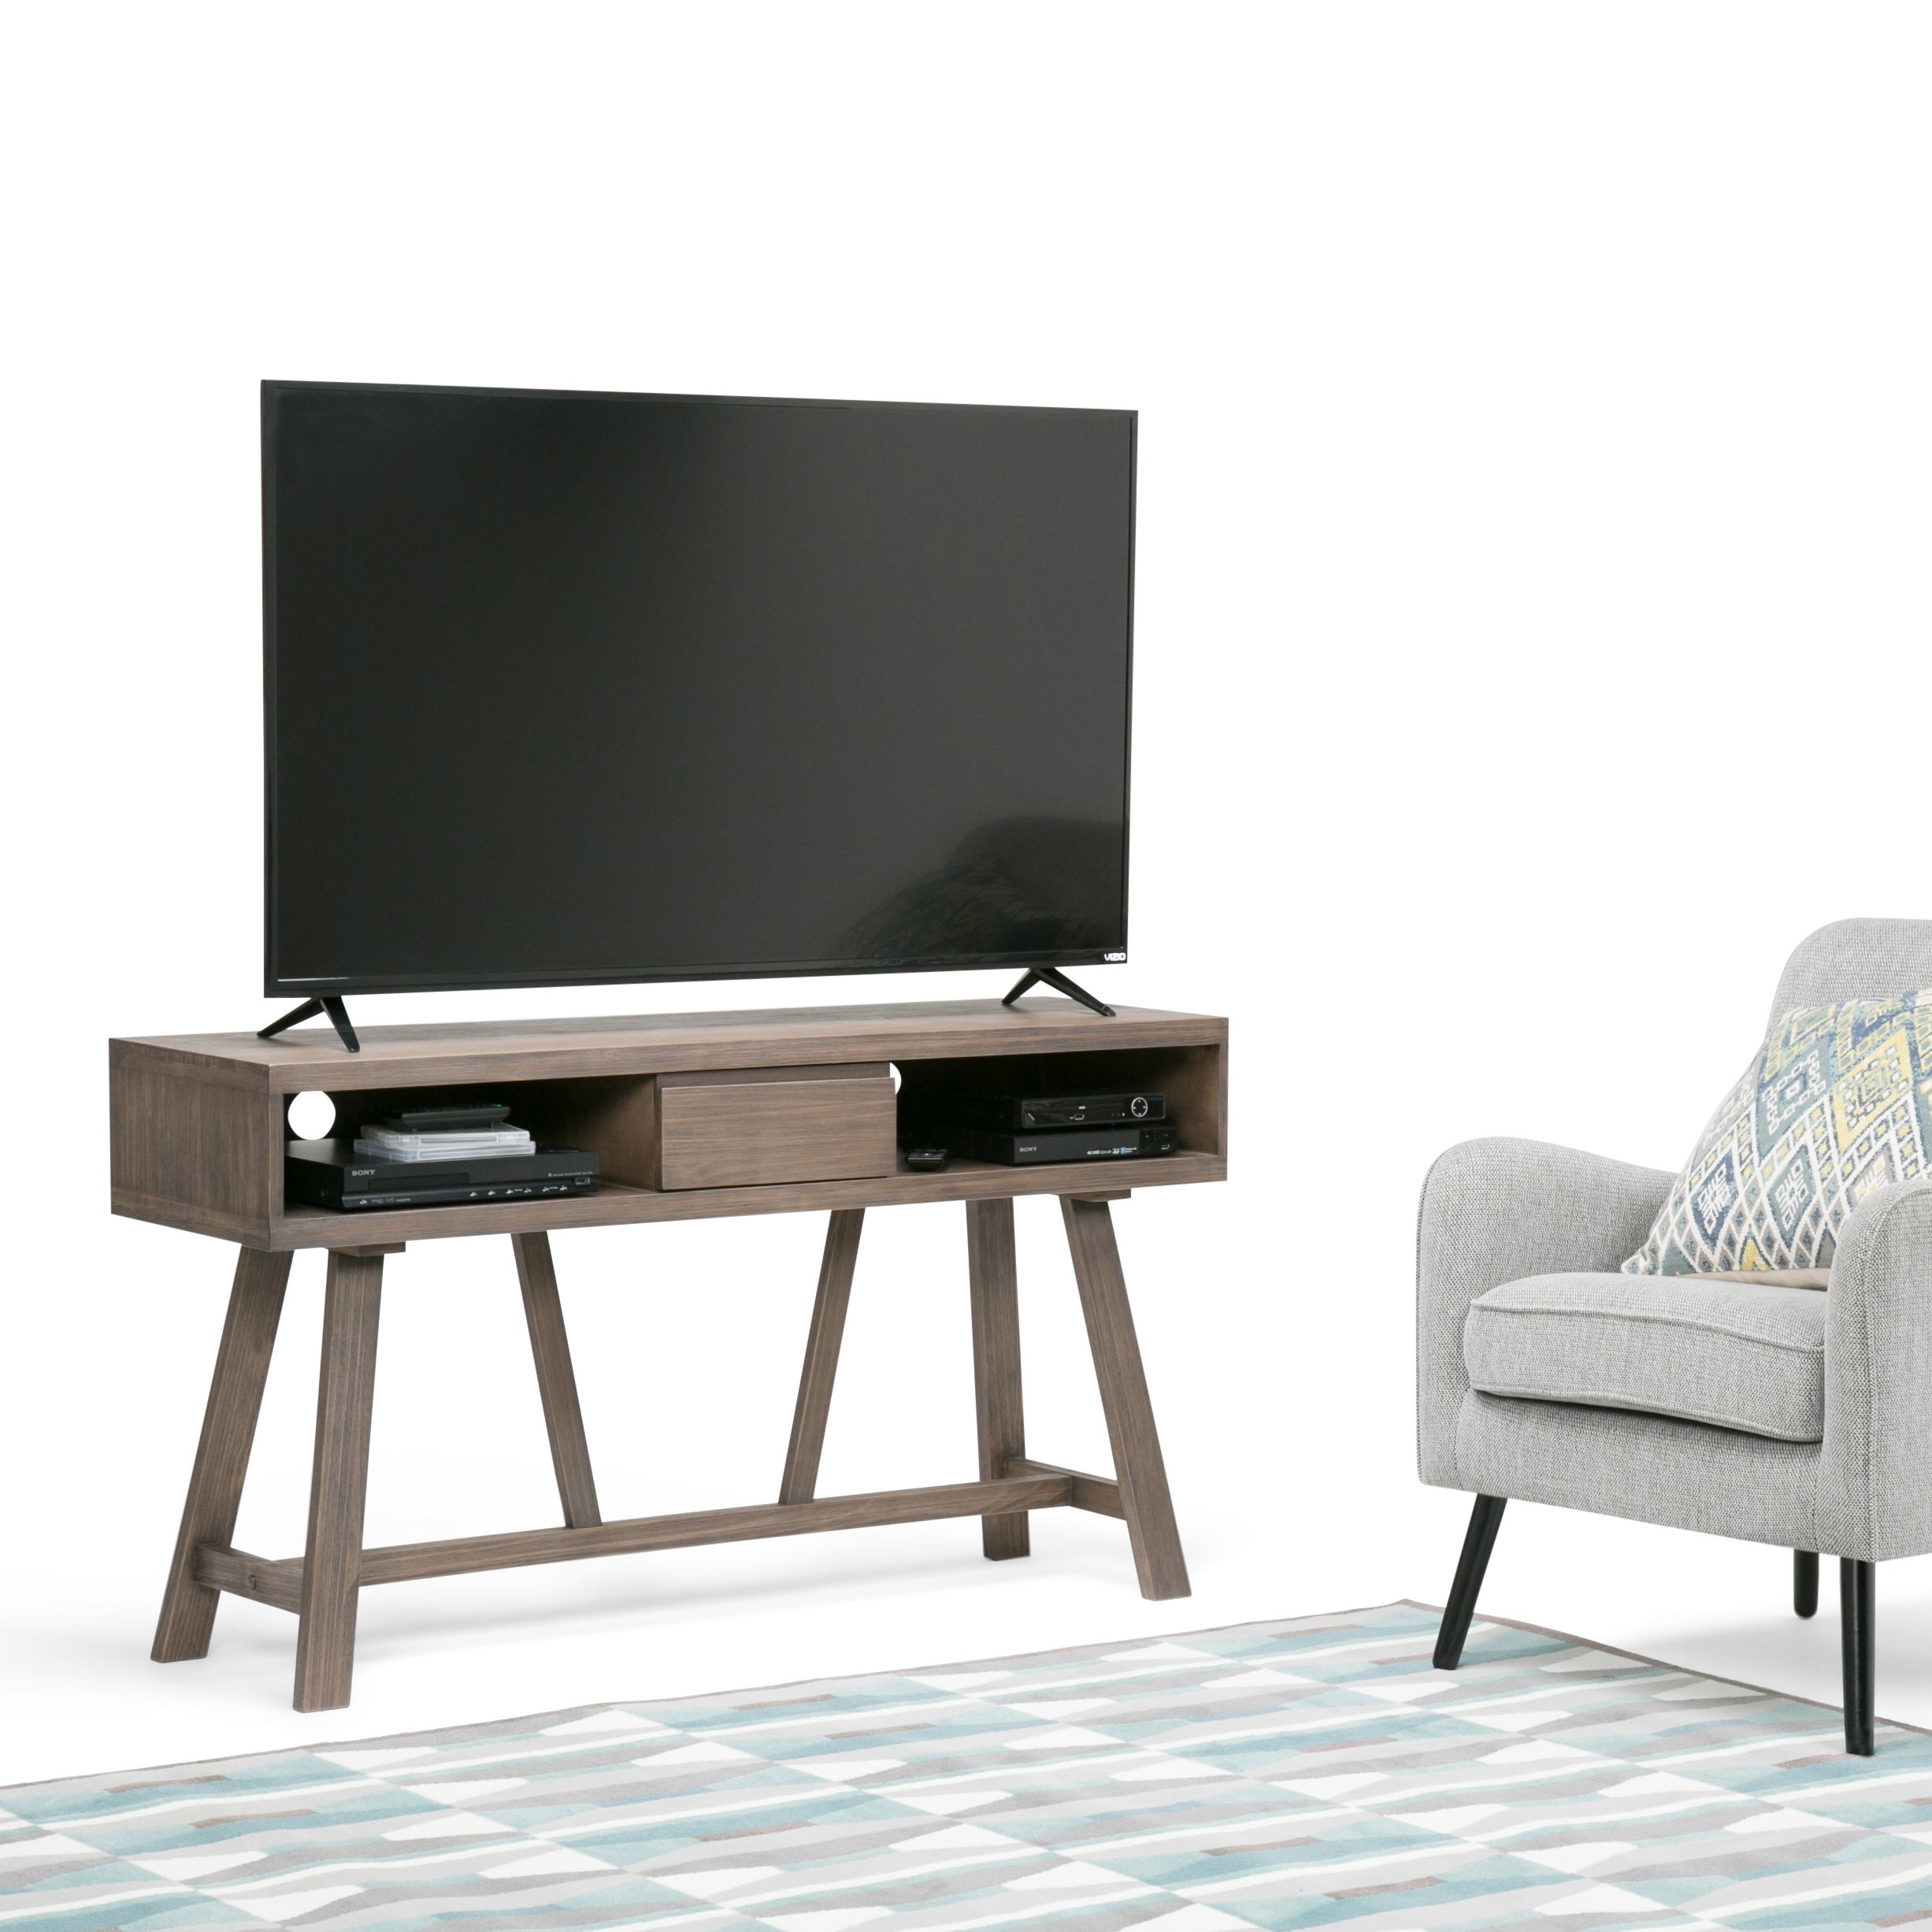 Shop Wyndenhall Stewart Solid Wood 54 Inch Tv Media Stand For Tvs Up